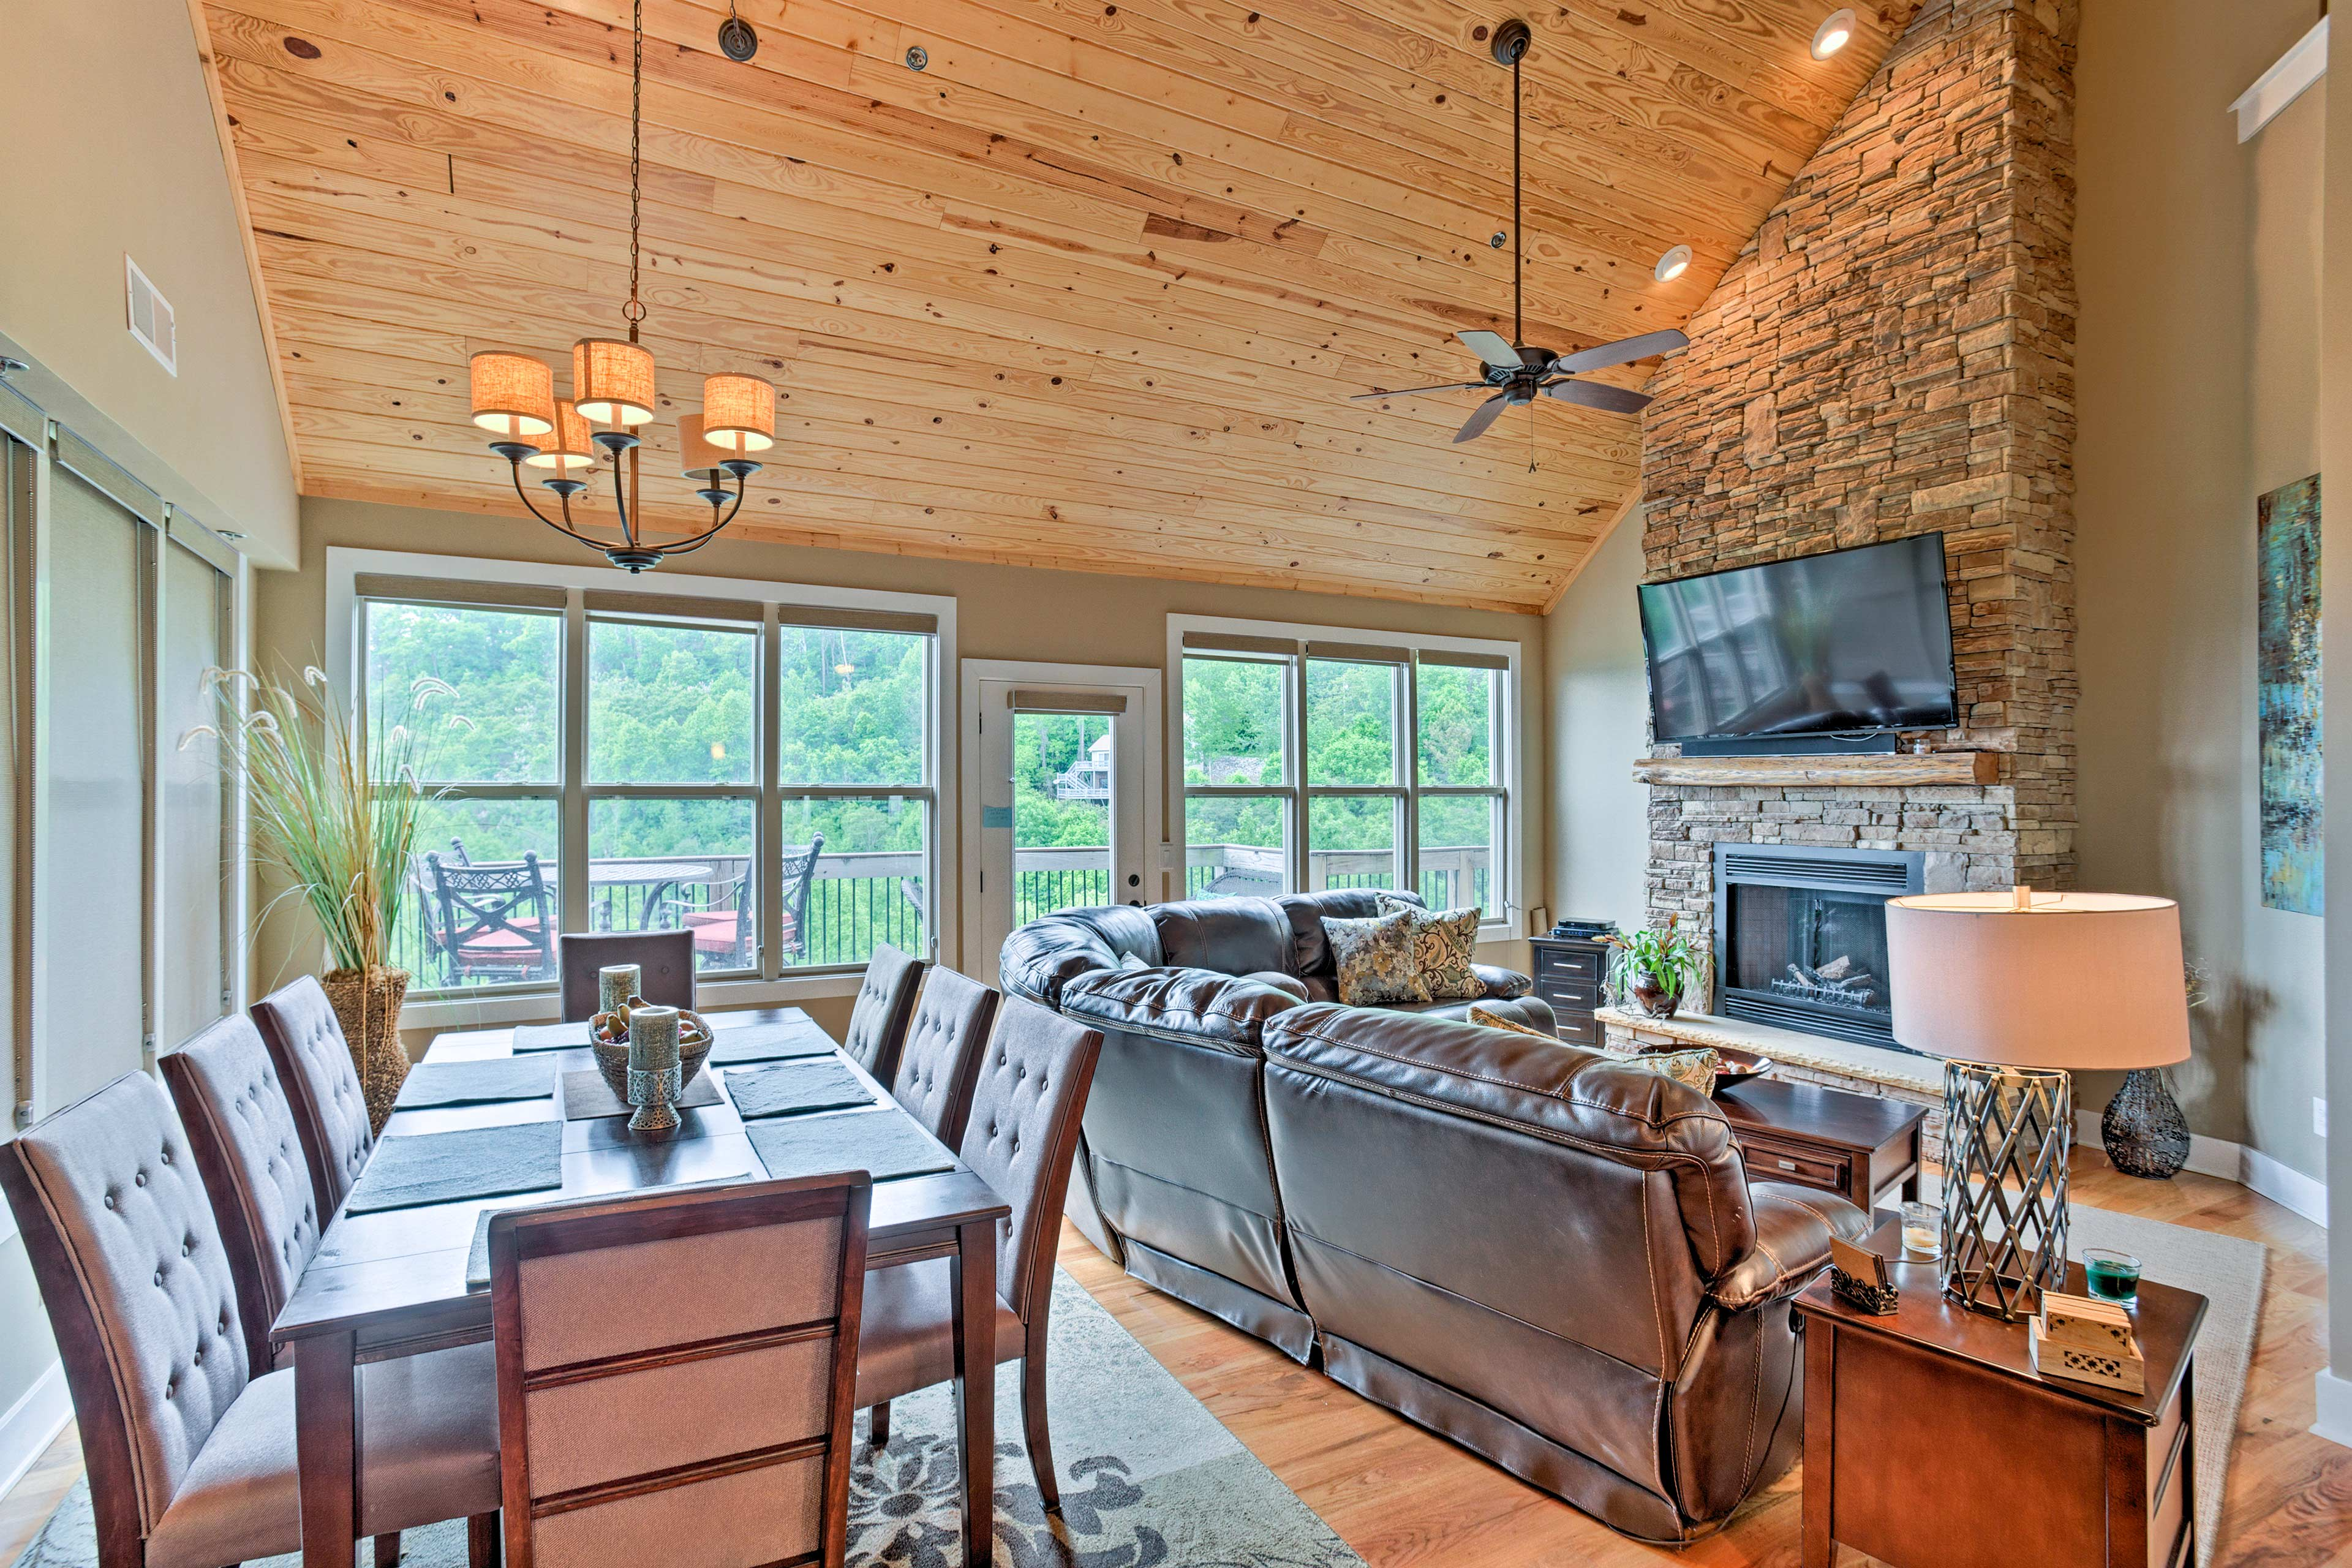 Access the furnished deck from the dining or living area.